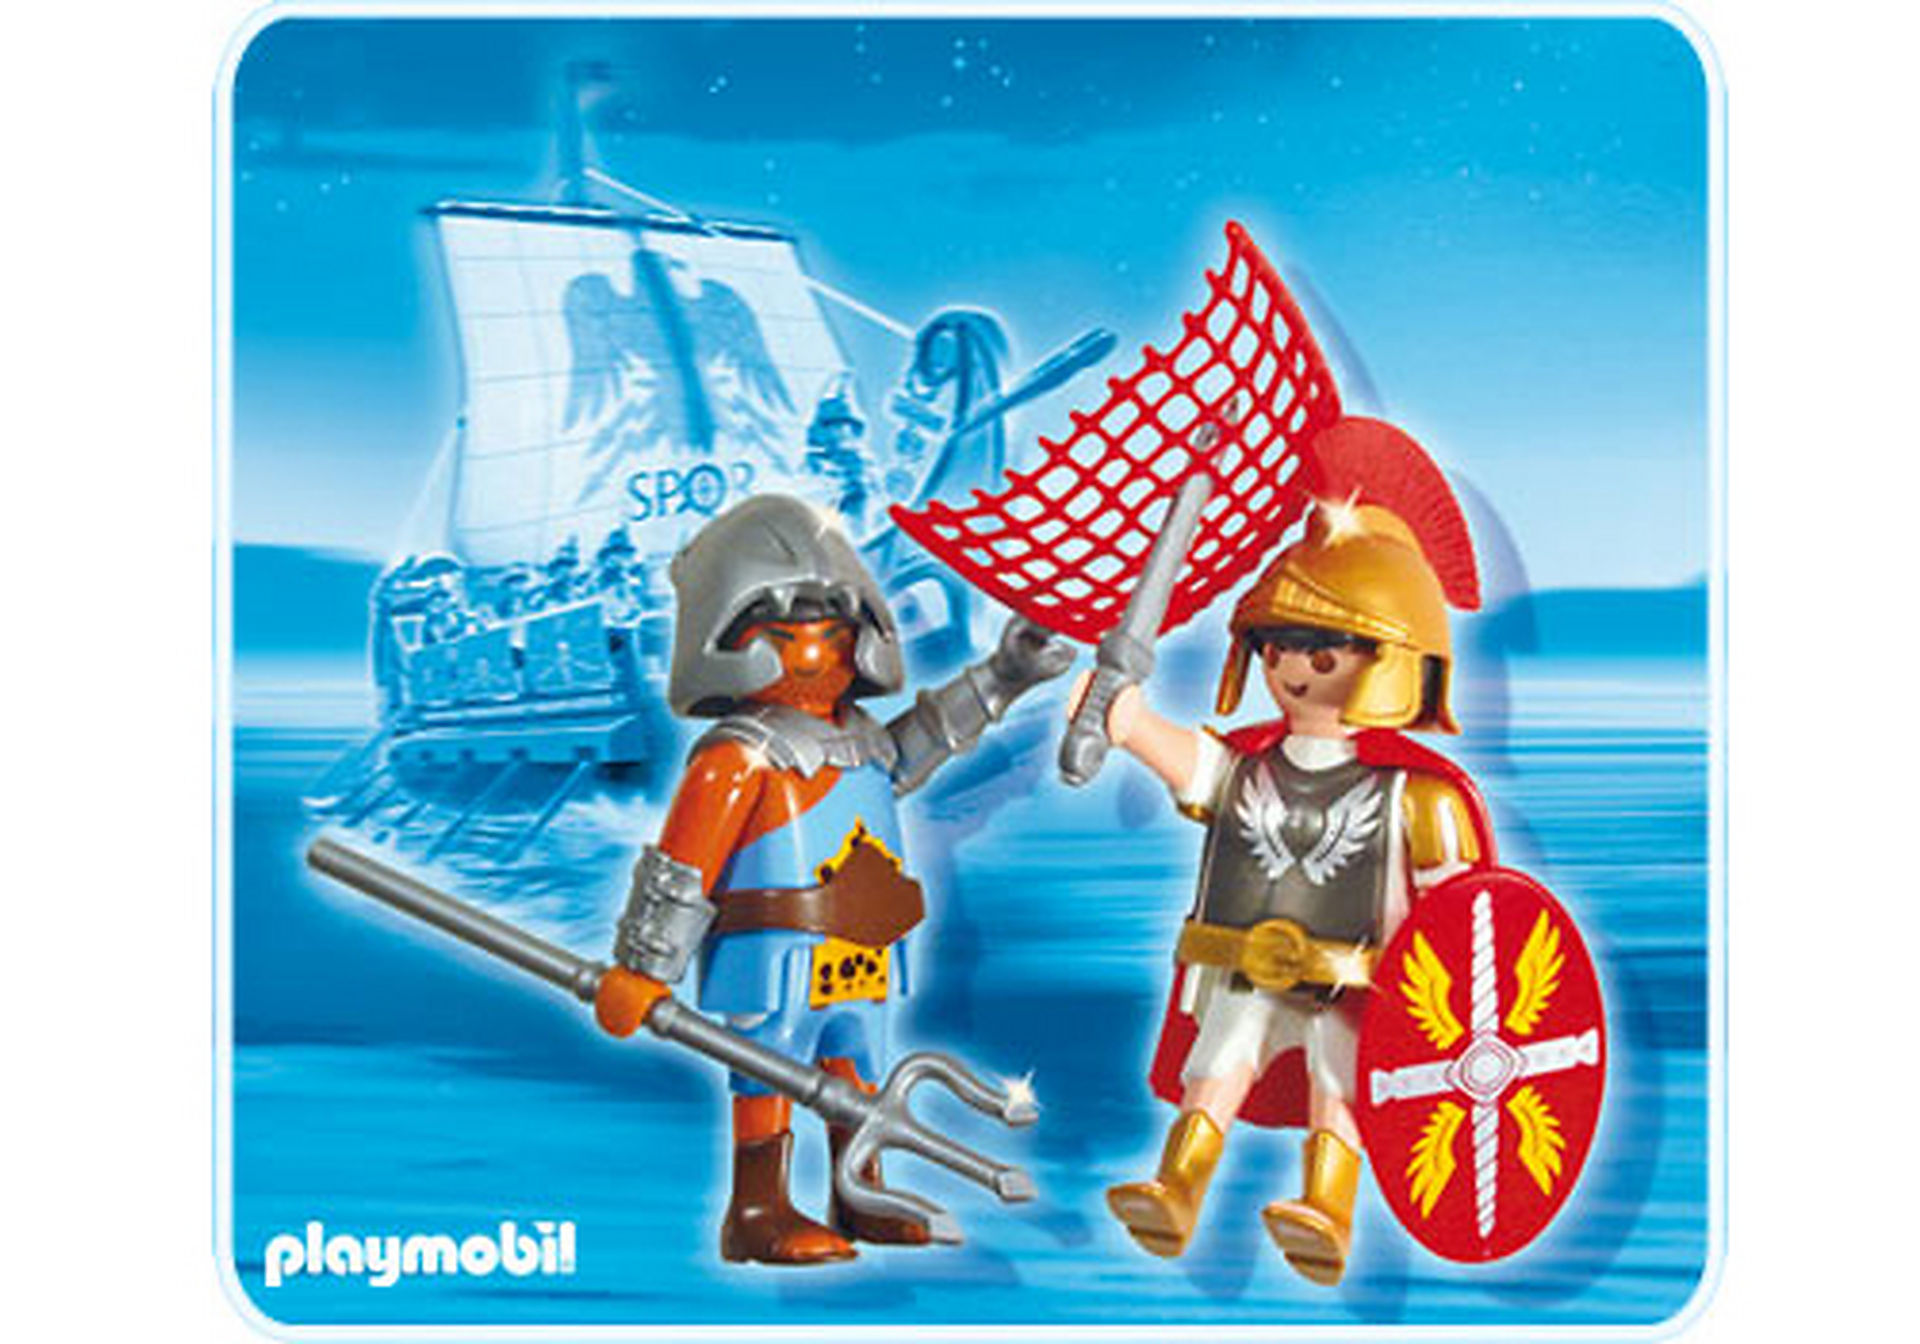 http://media.playmobil.com/i/playmobil/5817-A_product_detail/PLAYMOBIL Duo Tribun et gladiateur